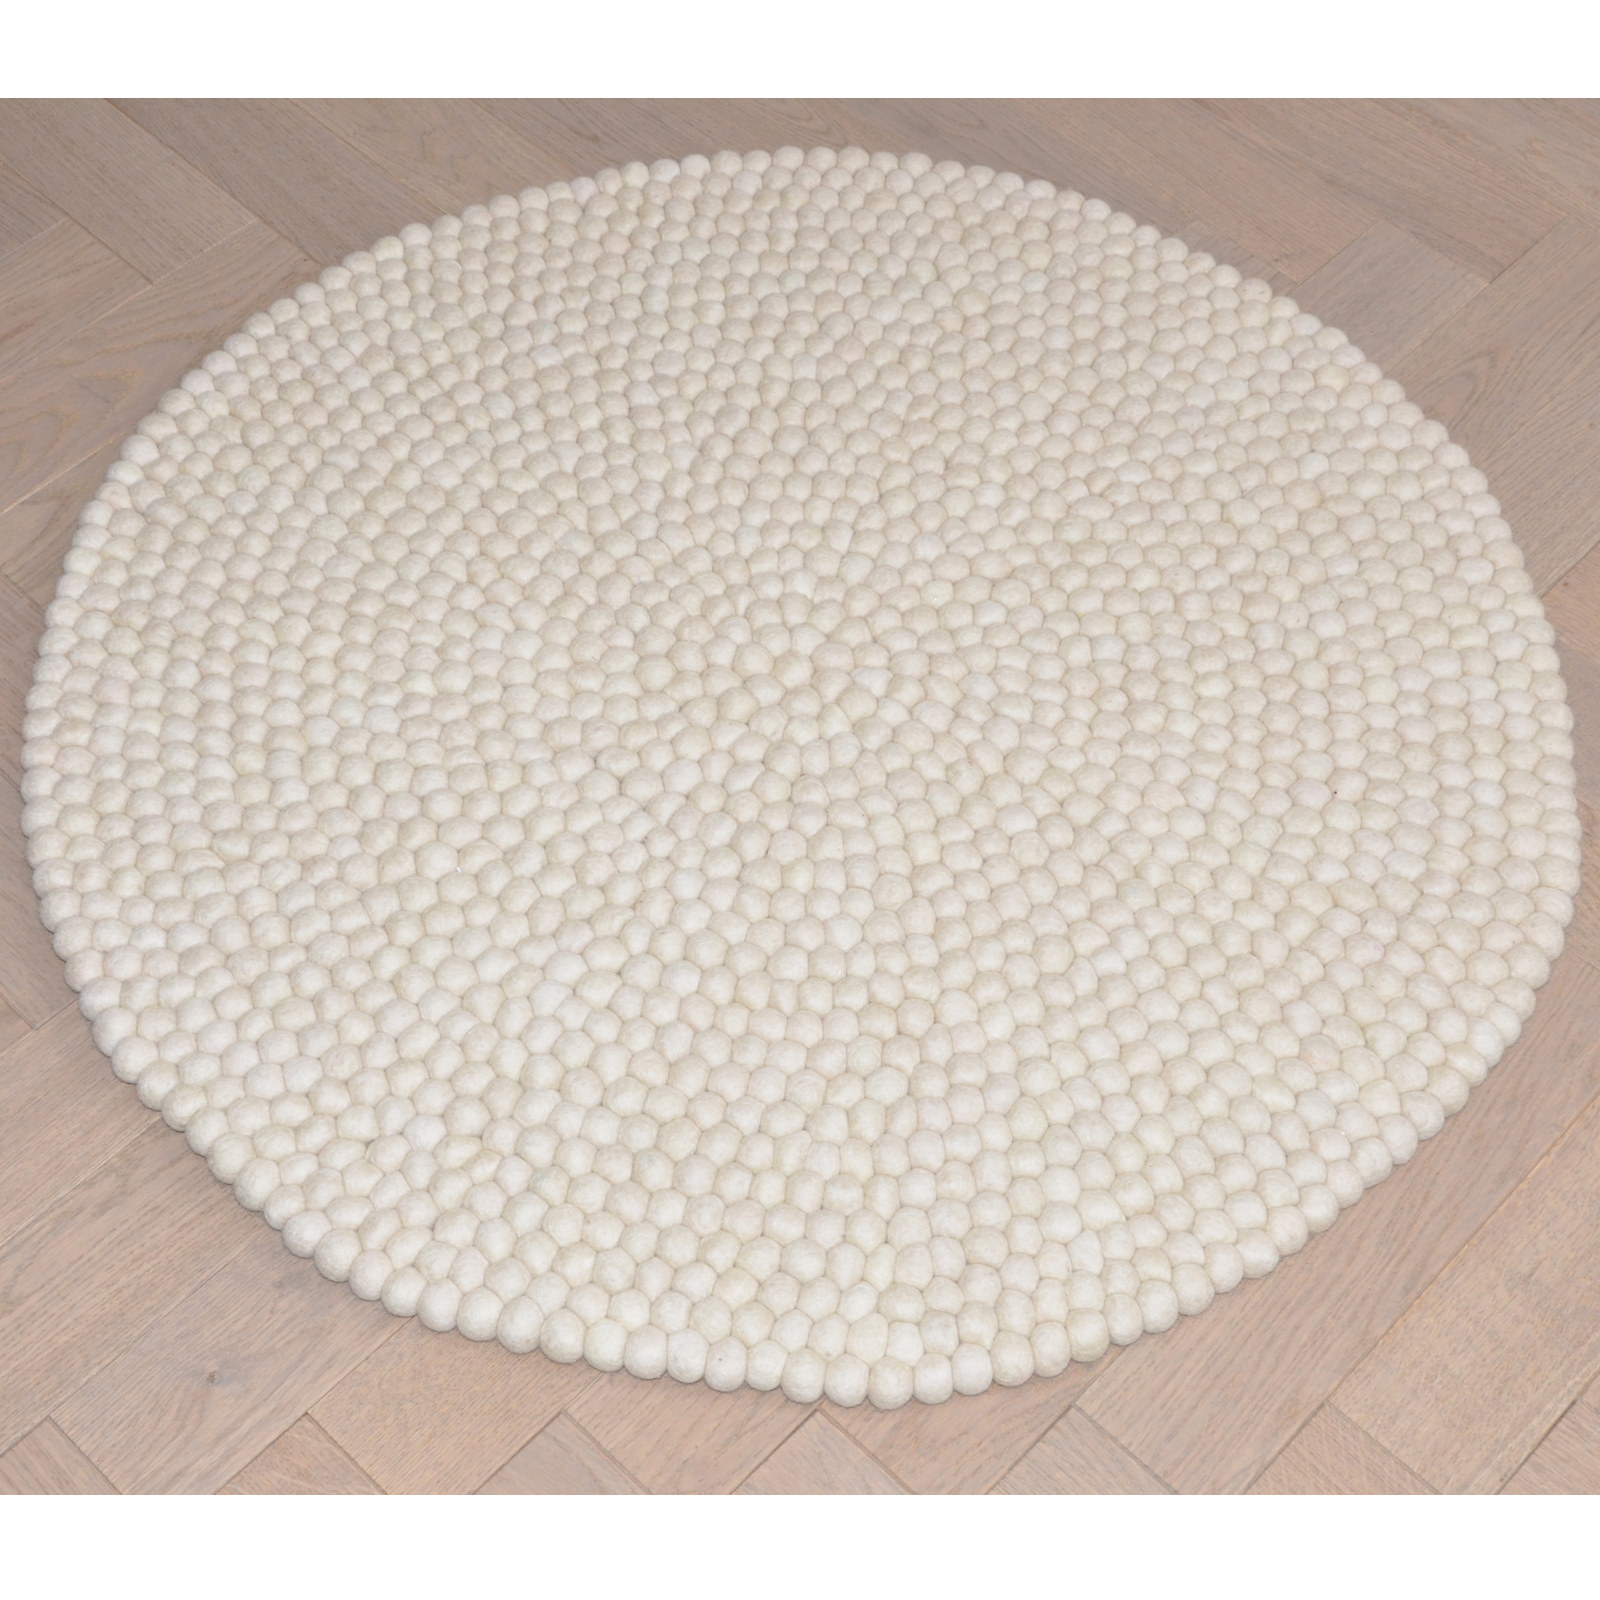 tapis de boules en laine naturel vert corail beige taupe bopompon. Black Bedroom Furniture Sets. Home Design Ideas